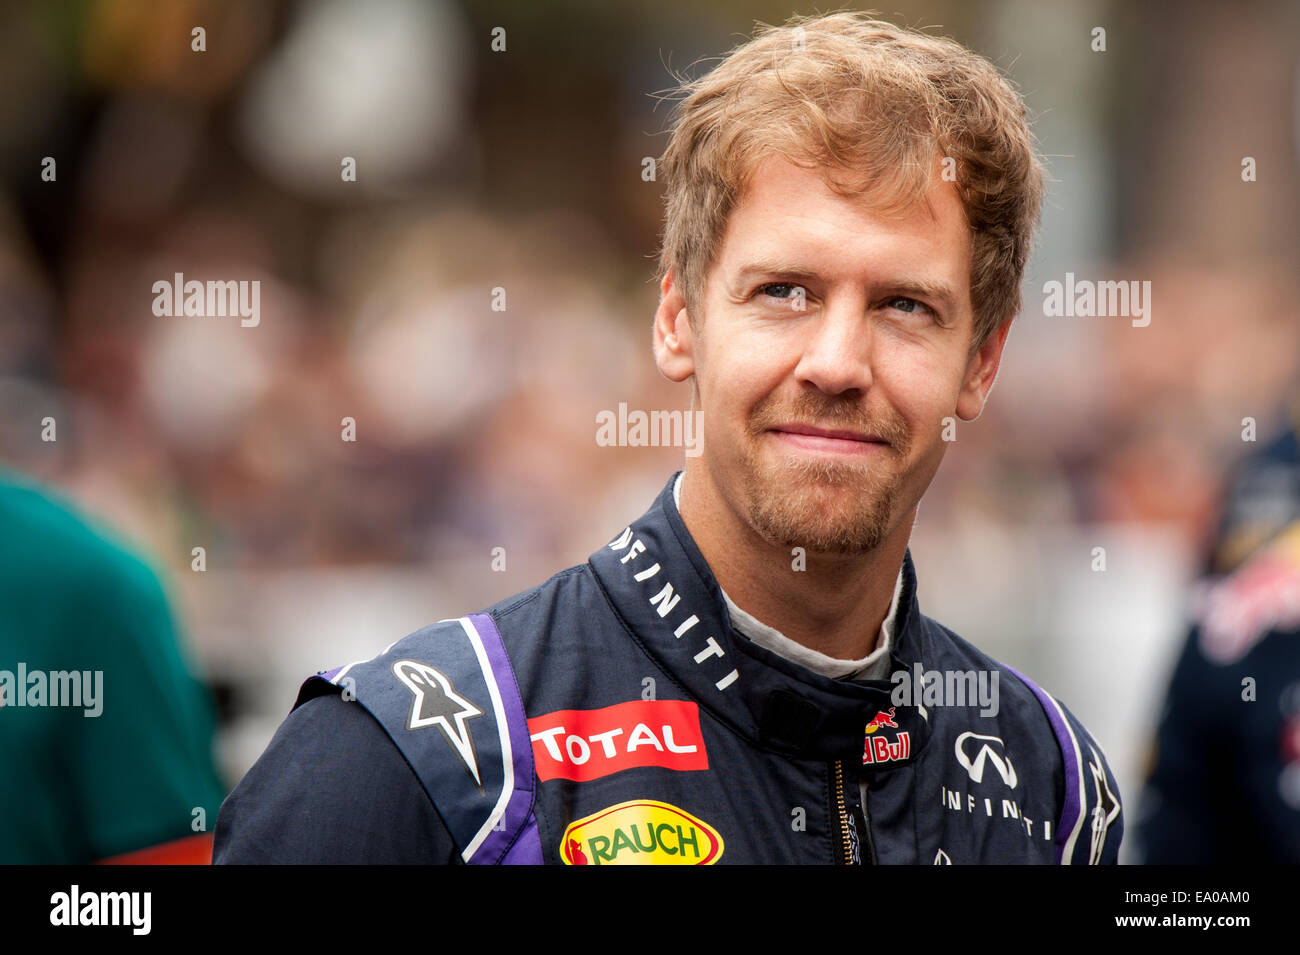 Reigning Formula 1 world champion, Sebastian Vettel, seen at a Red Bull/Infiniti demonstration on Congress Avenue Stock Photo